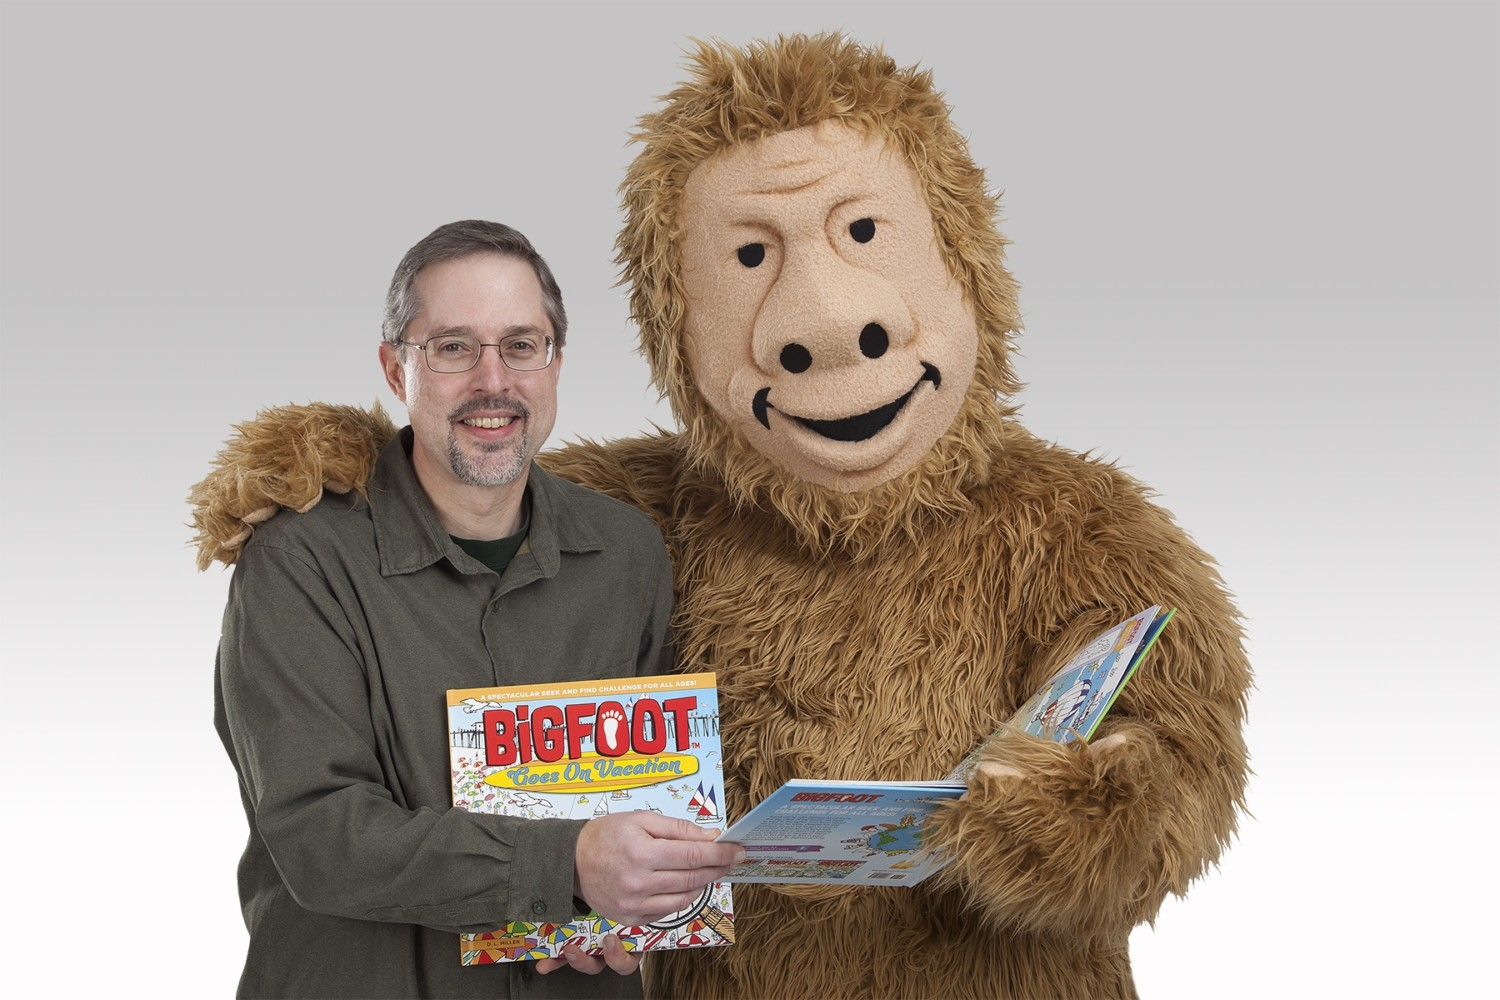 Hit the Road: Books invite readers to join educational hunt for Bigfoot